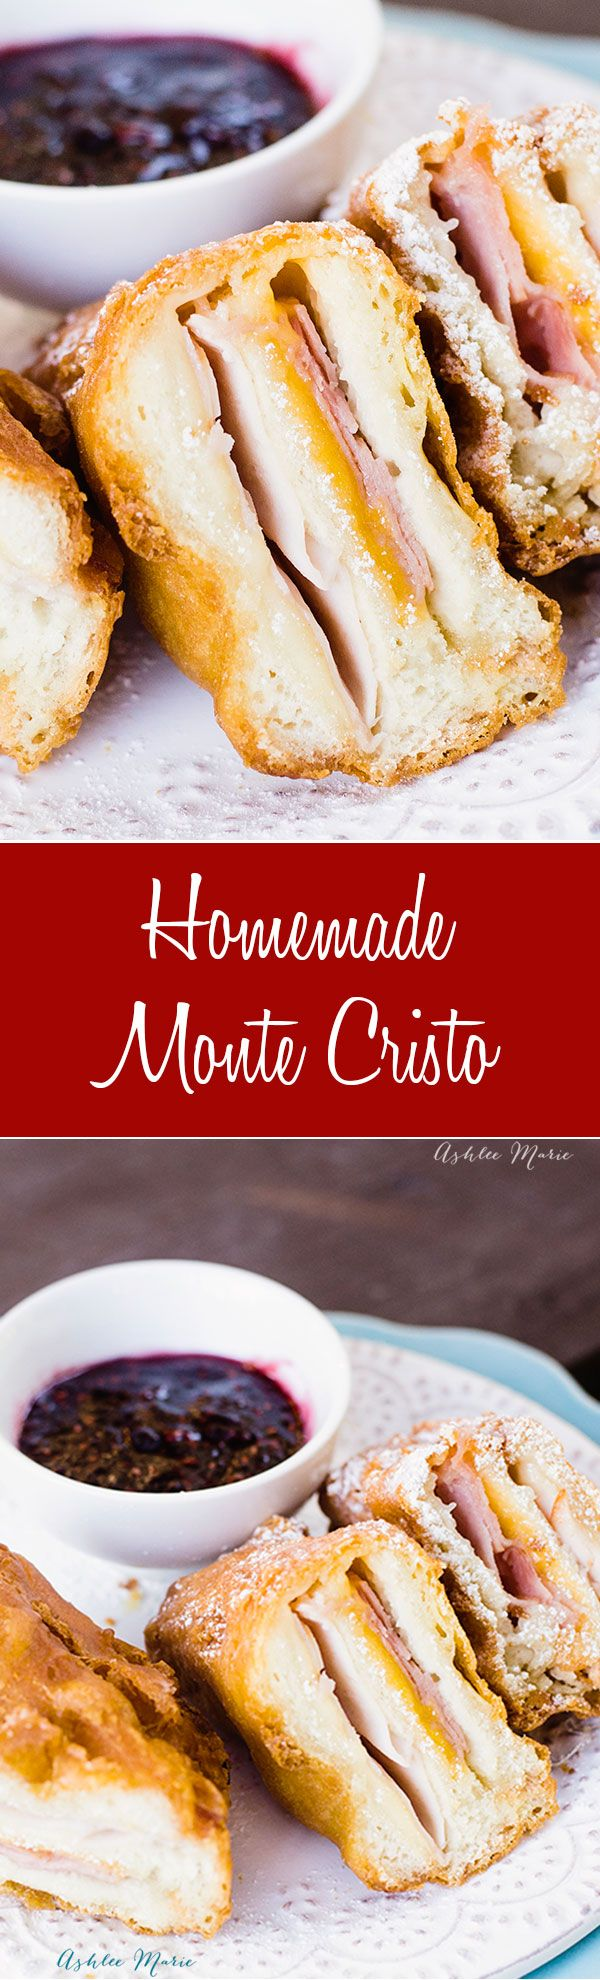 making your own deep fried monte cristo sandwich is super easy and always delicious, just like you can get at disneyland